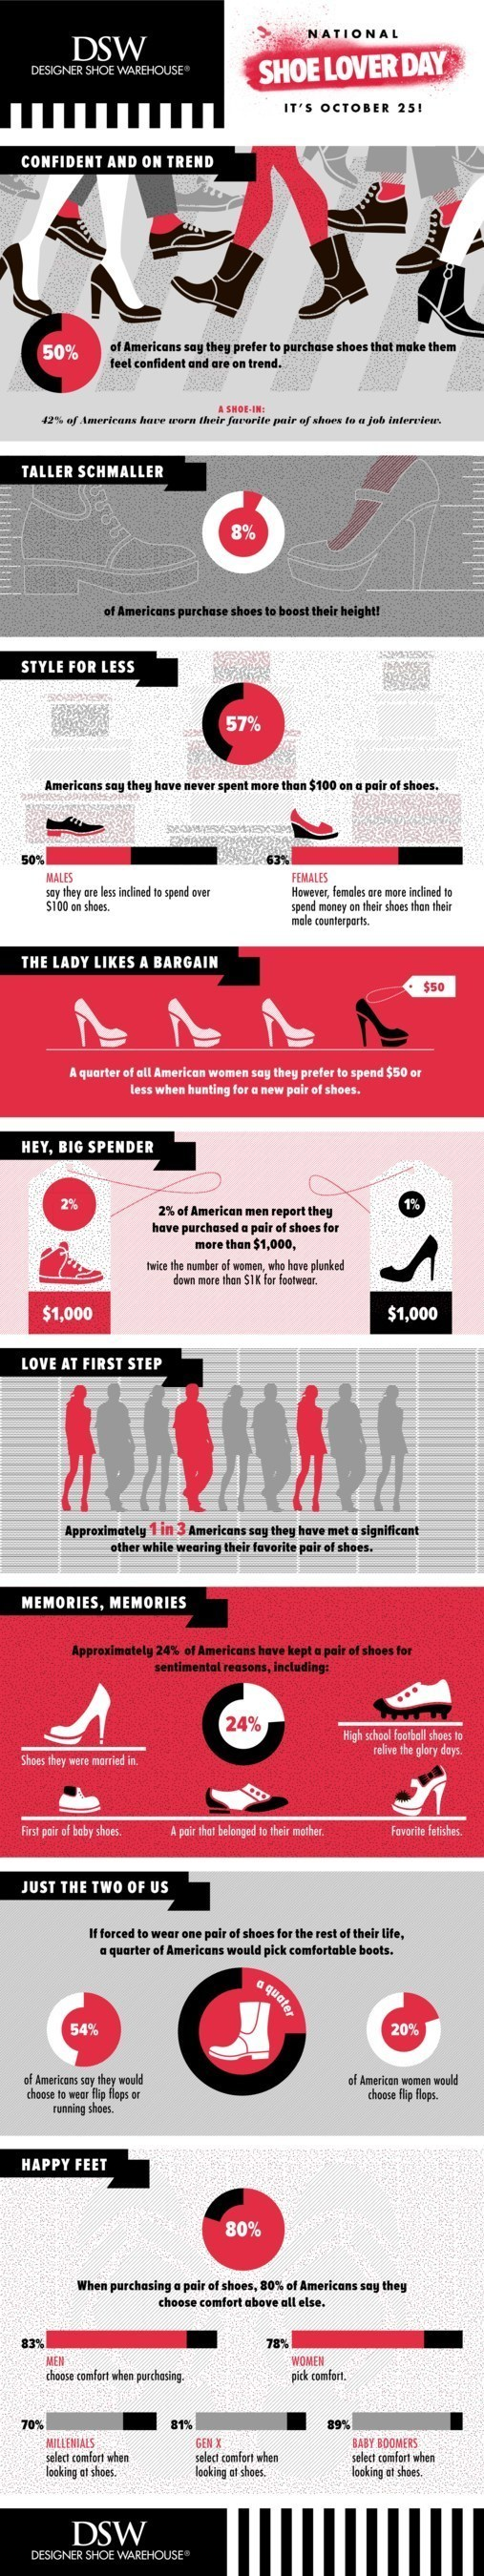 DSW shares results of new national consumer survey celebrating National Shoe Lover Day on October 25.